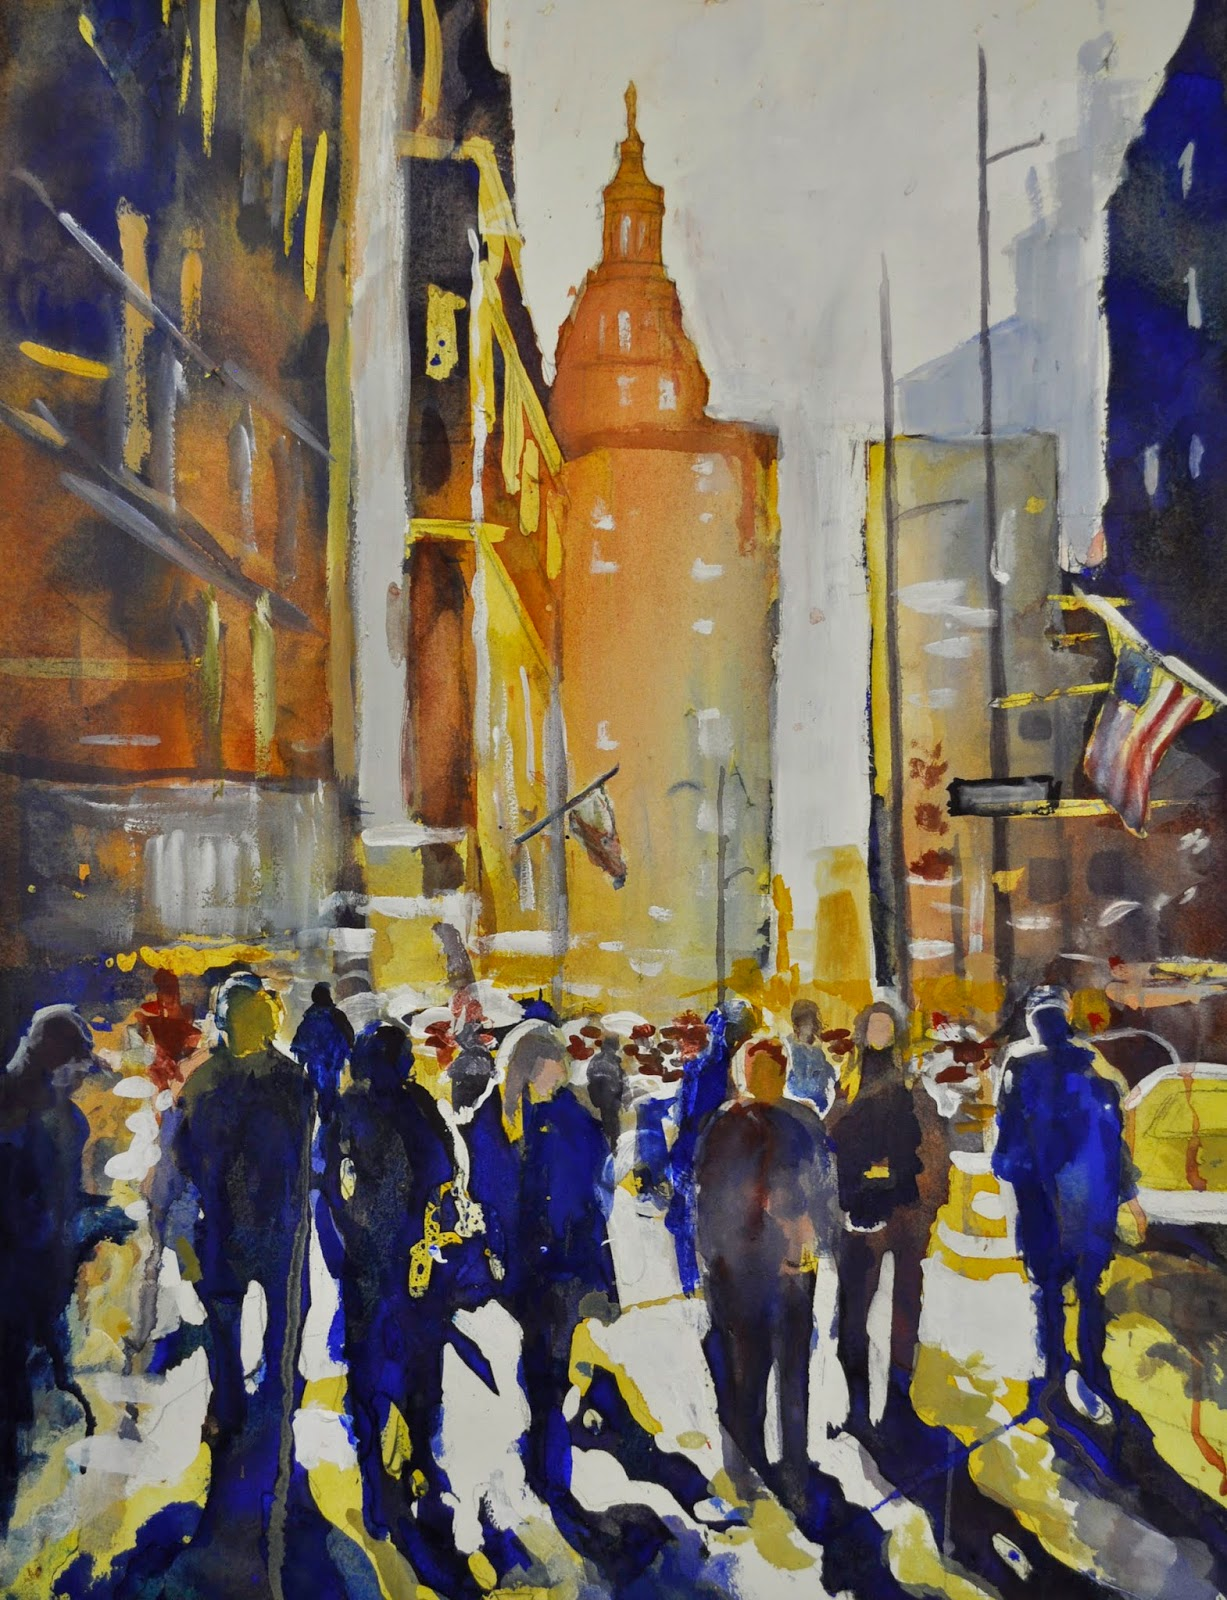 Watercolor art society of houston - My Watercolor Painting Stroll Down 7th Avenue Was Recently Accepted Into The Watercolor Art Society Houston 38th International Exhibition 2015